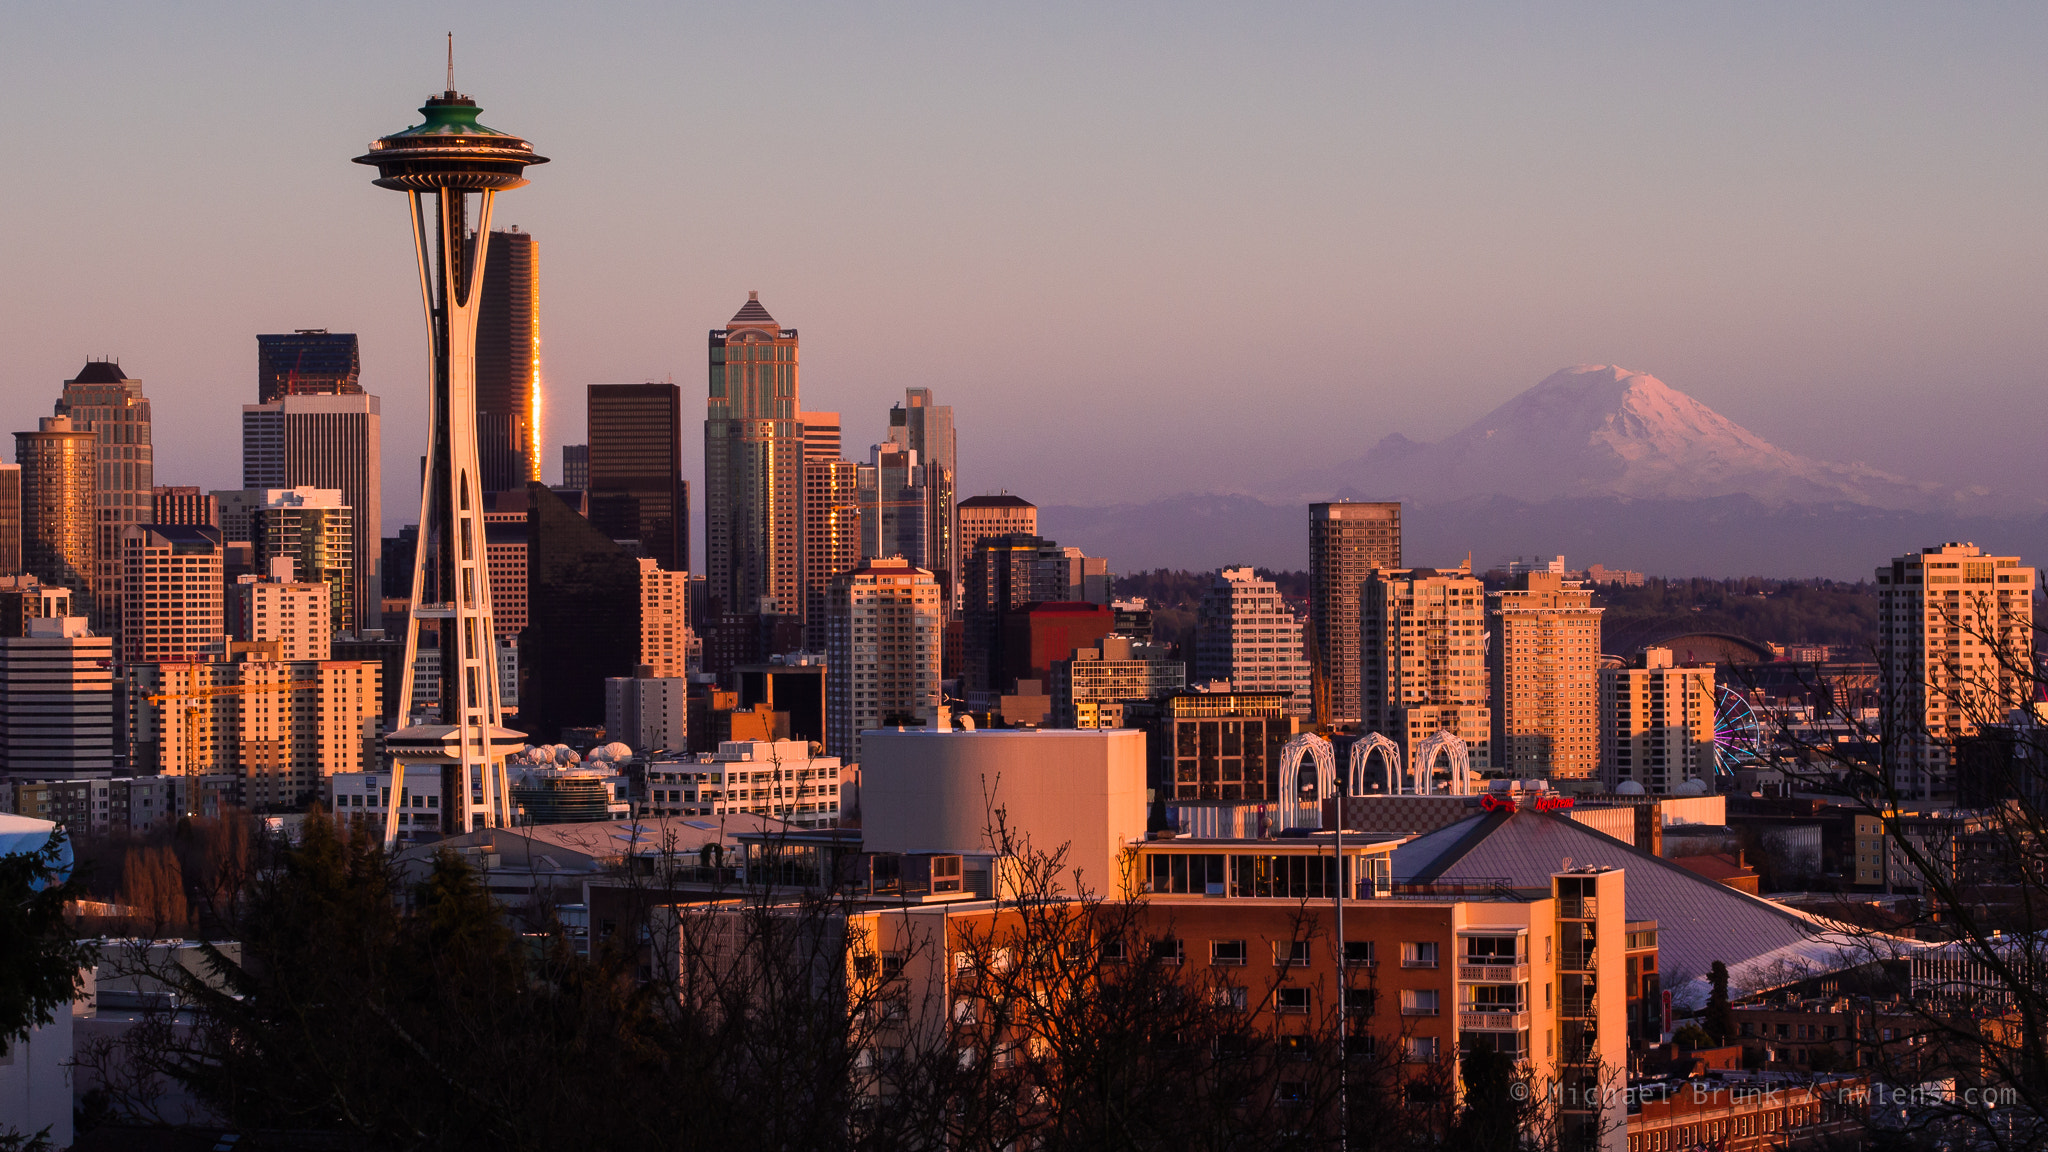 Photograph Seattle Sunset by Michael Brunk on 500px